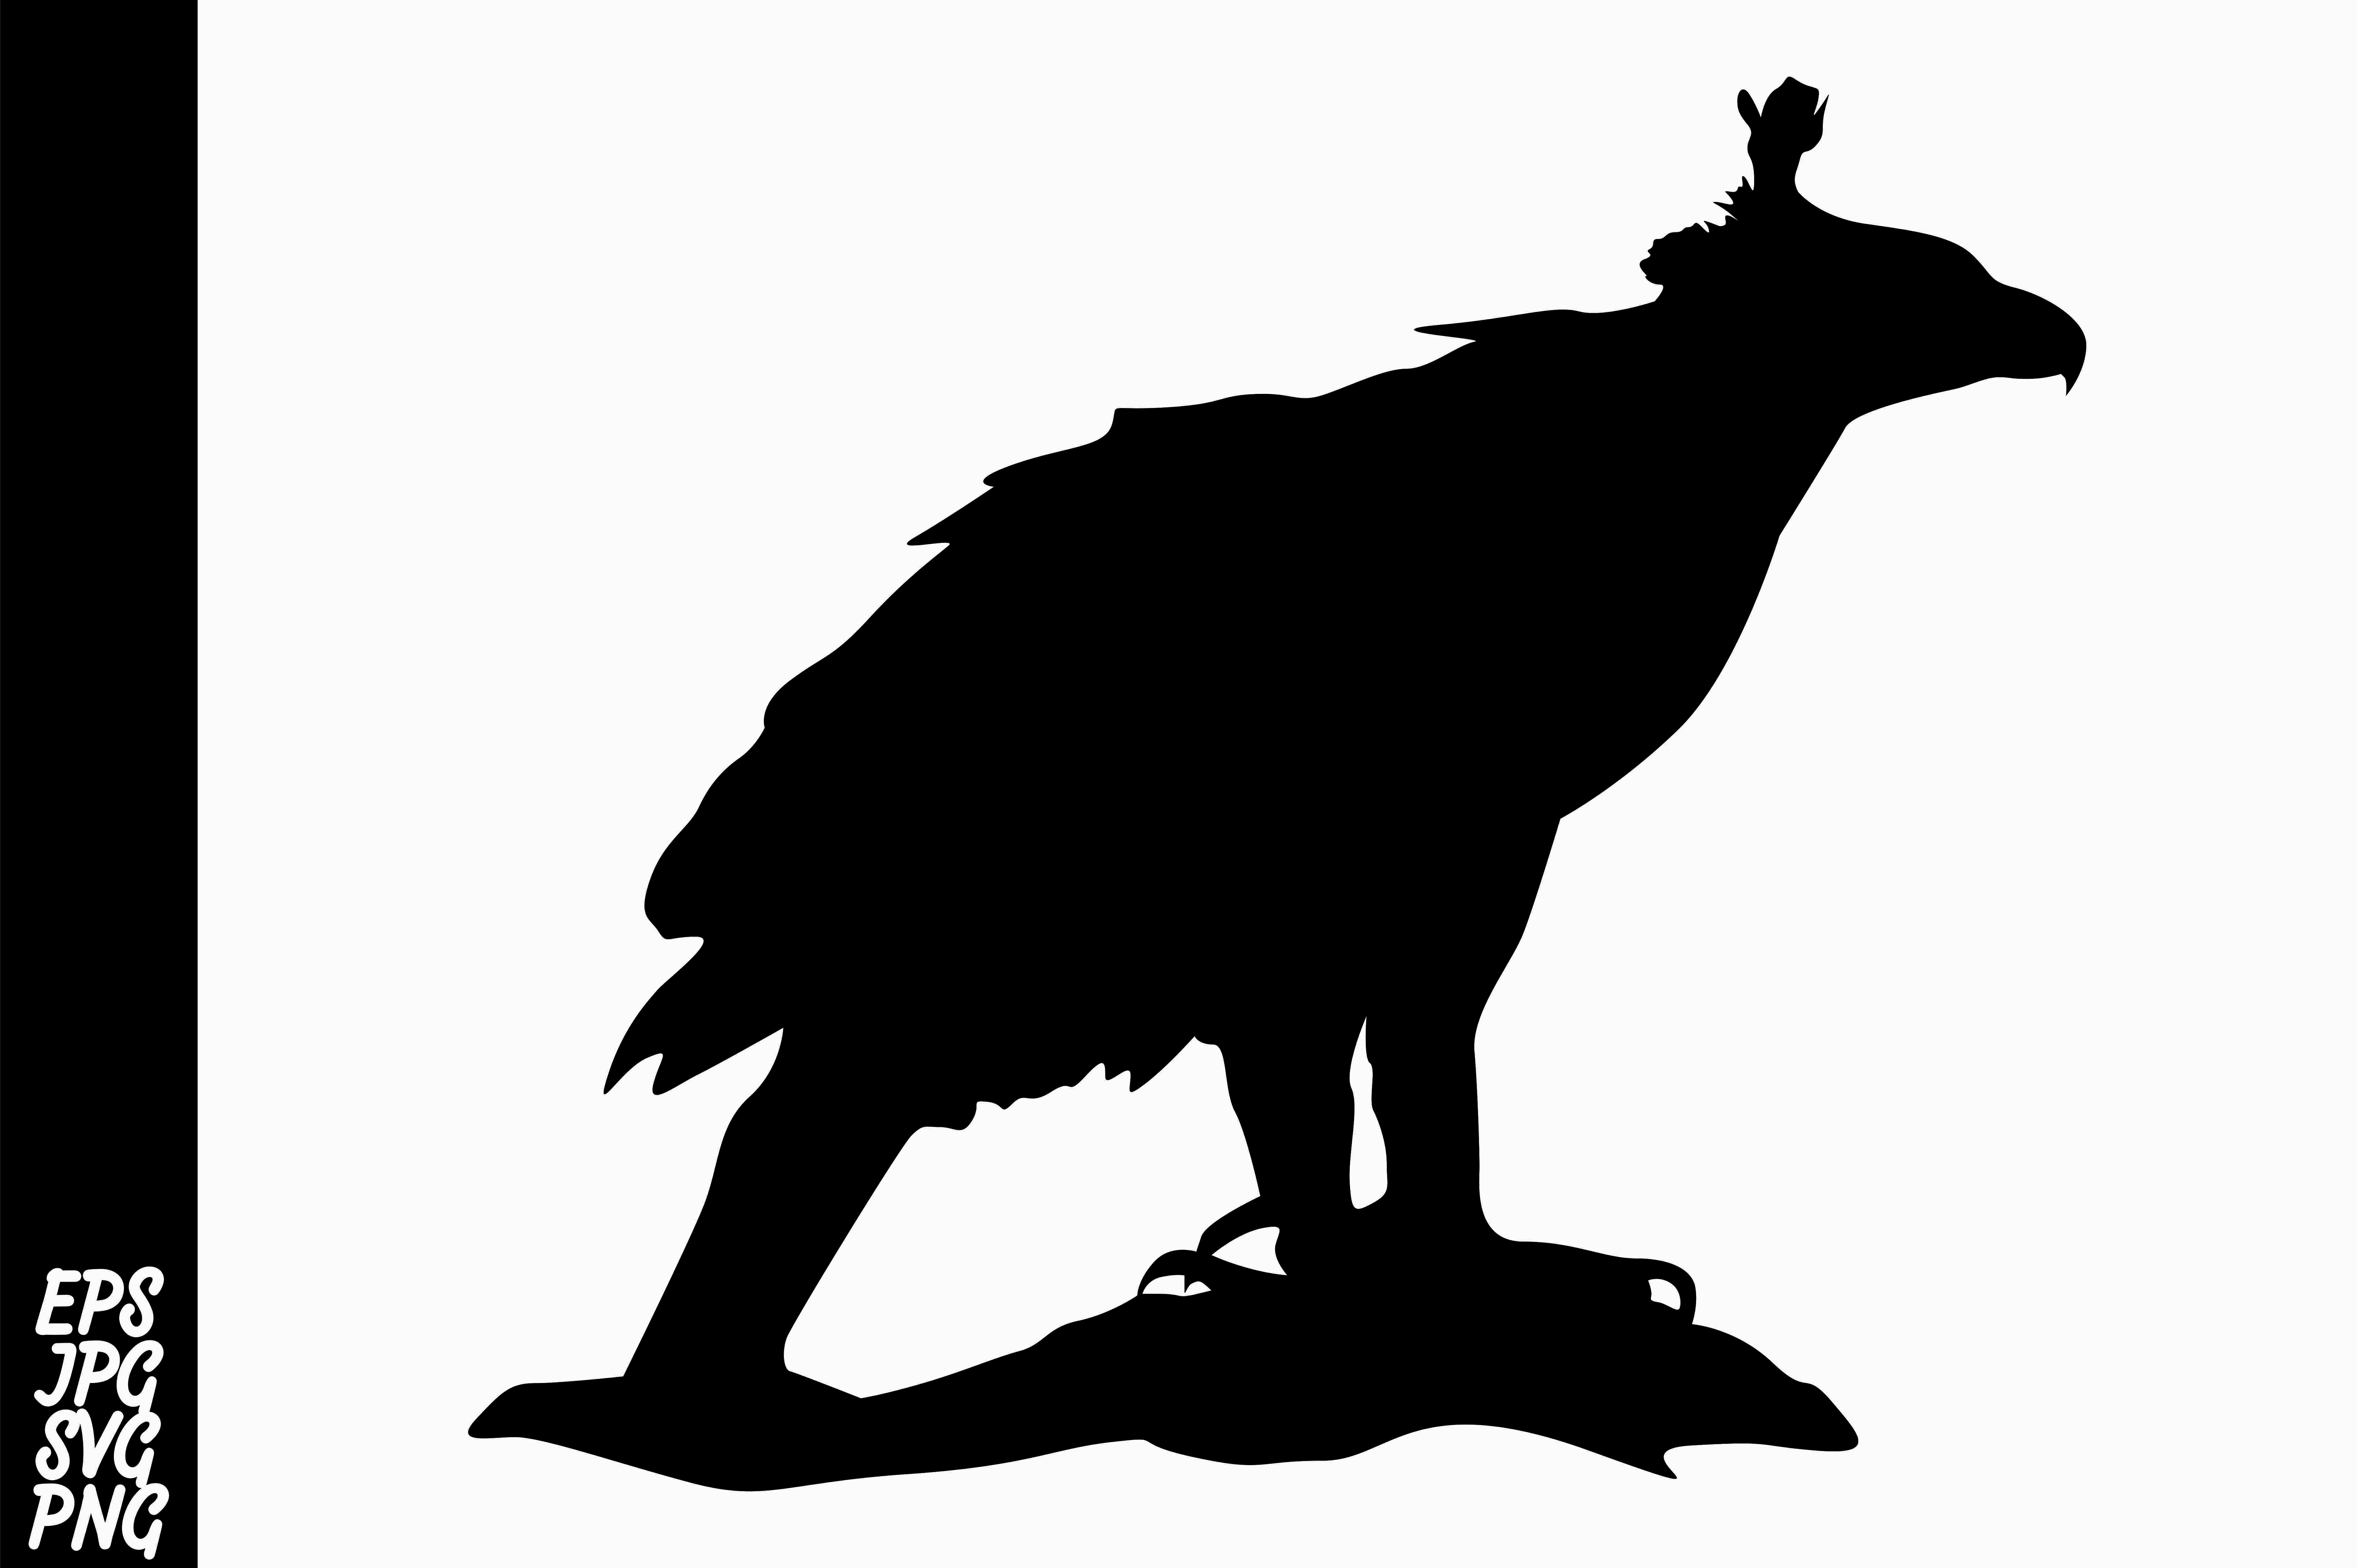 Download Free Silhouette Eagle Vector Graphic By Arief Sapta Adjie Ii for Cricut Explore, Silhouette and other cutting machines.